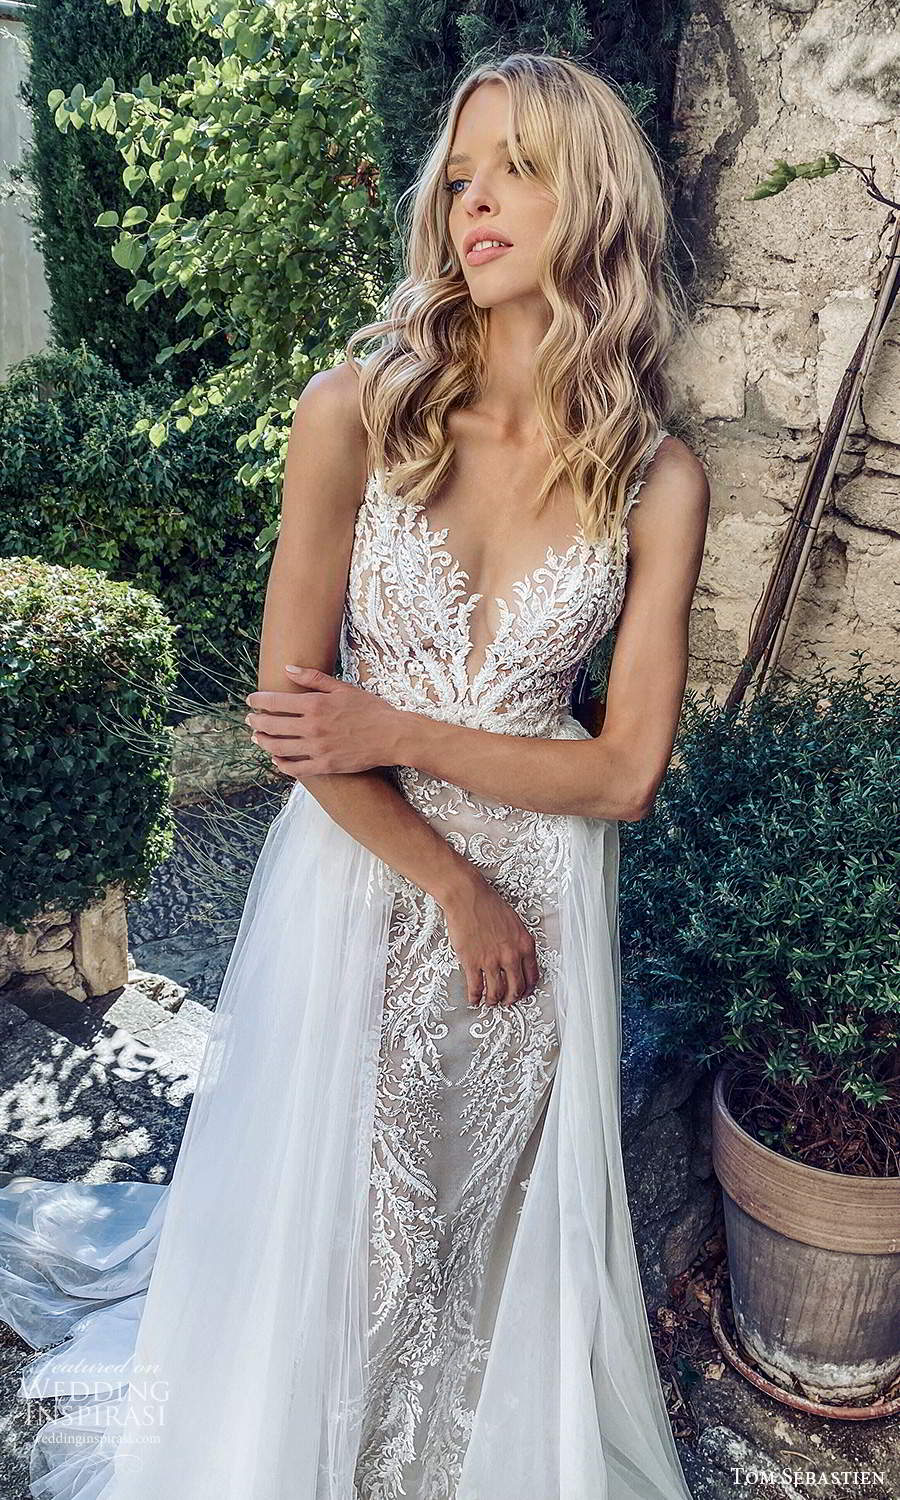 tom sebastien 2021 bridal provence sleeveless straps v neckline fully embellished lace sheath mermaid wedding dress chapel train overskirt (10) mv